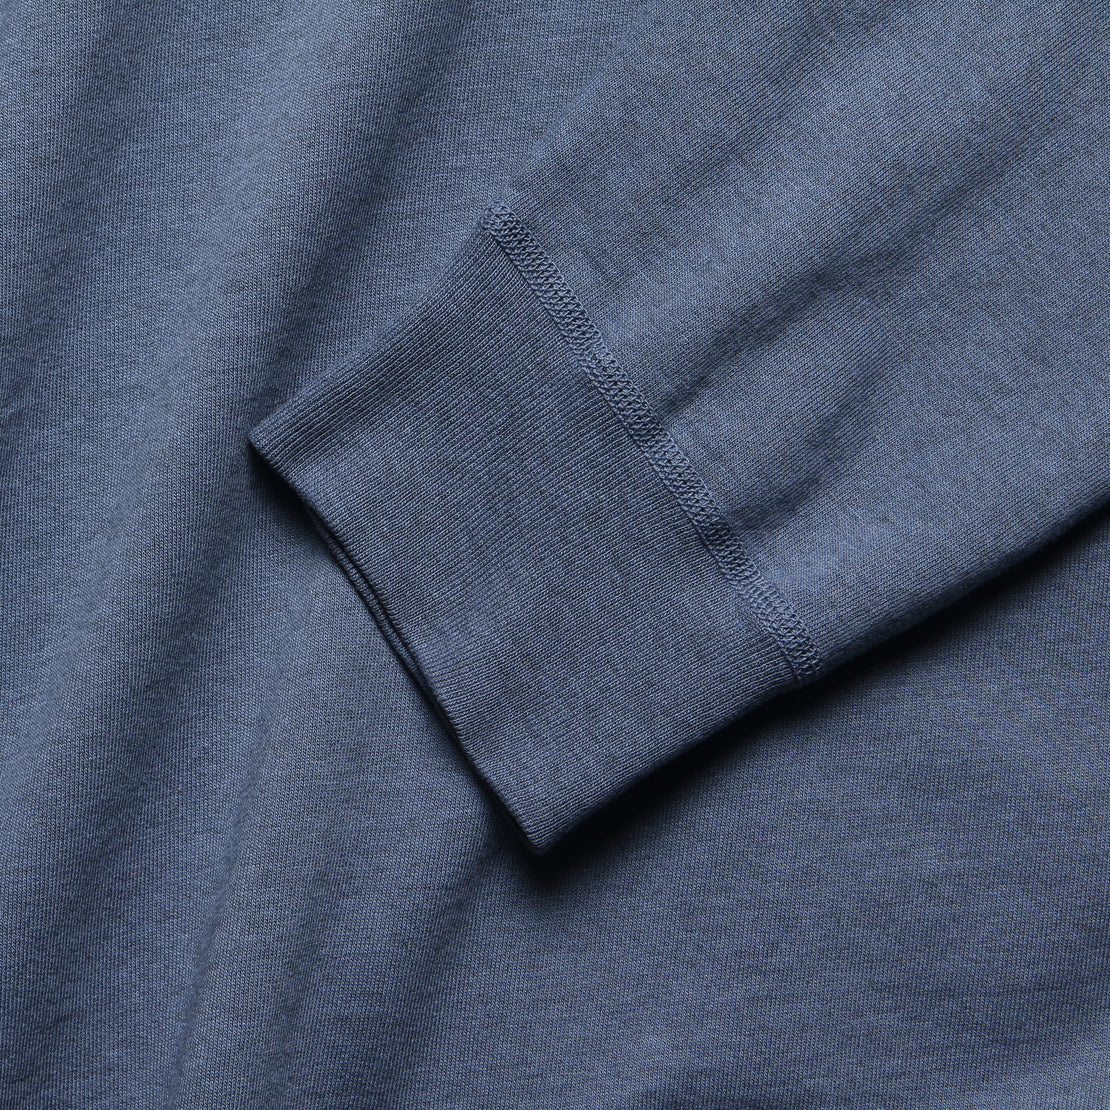 Heather Fleece Sweatshirt - Good Blue